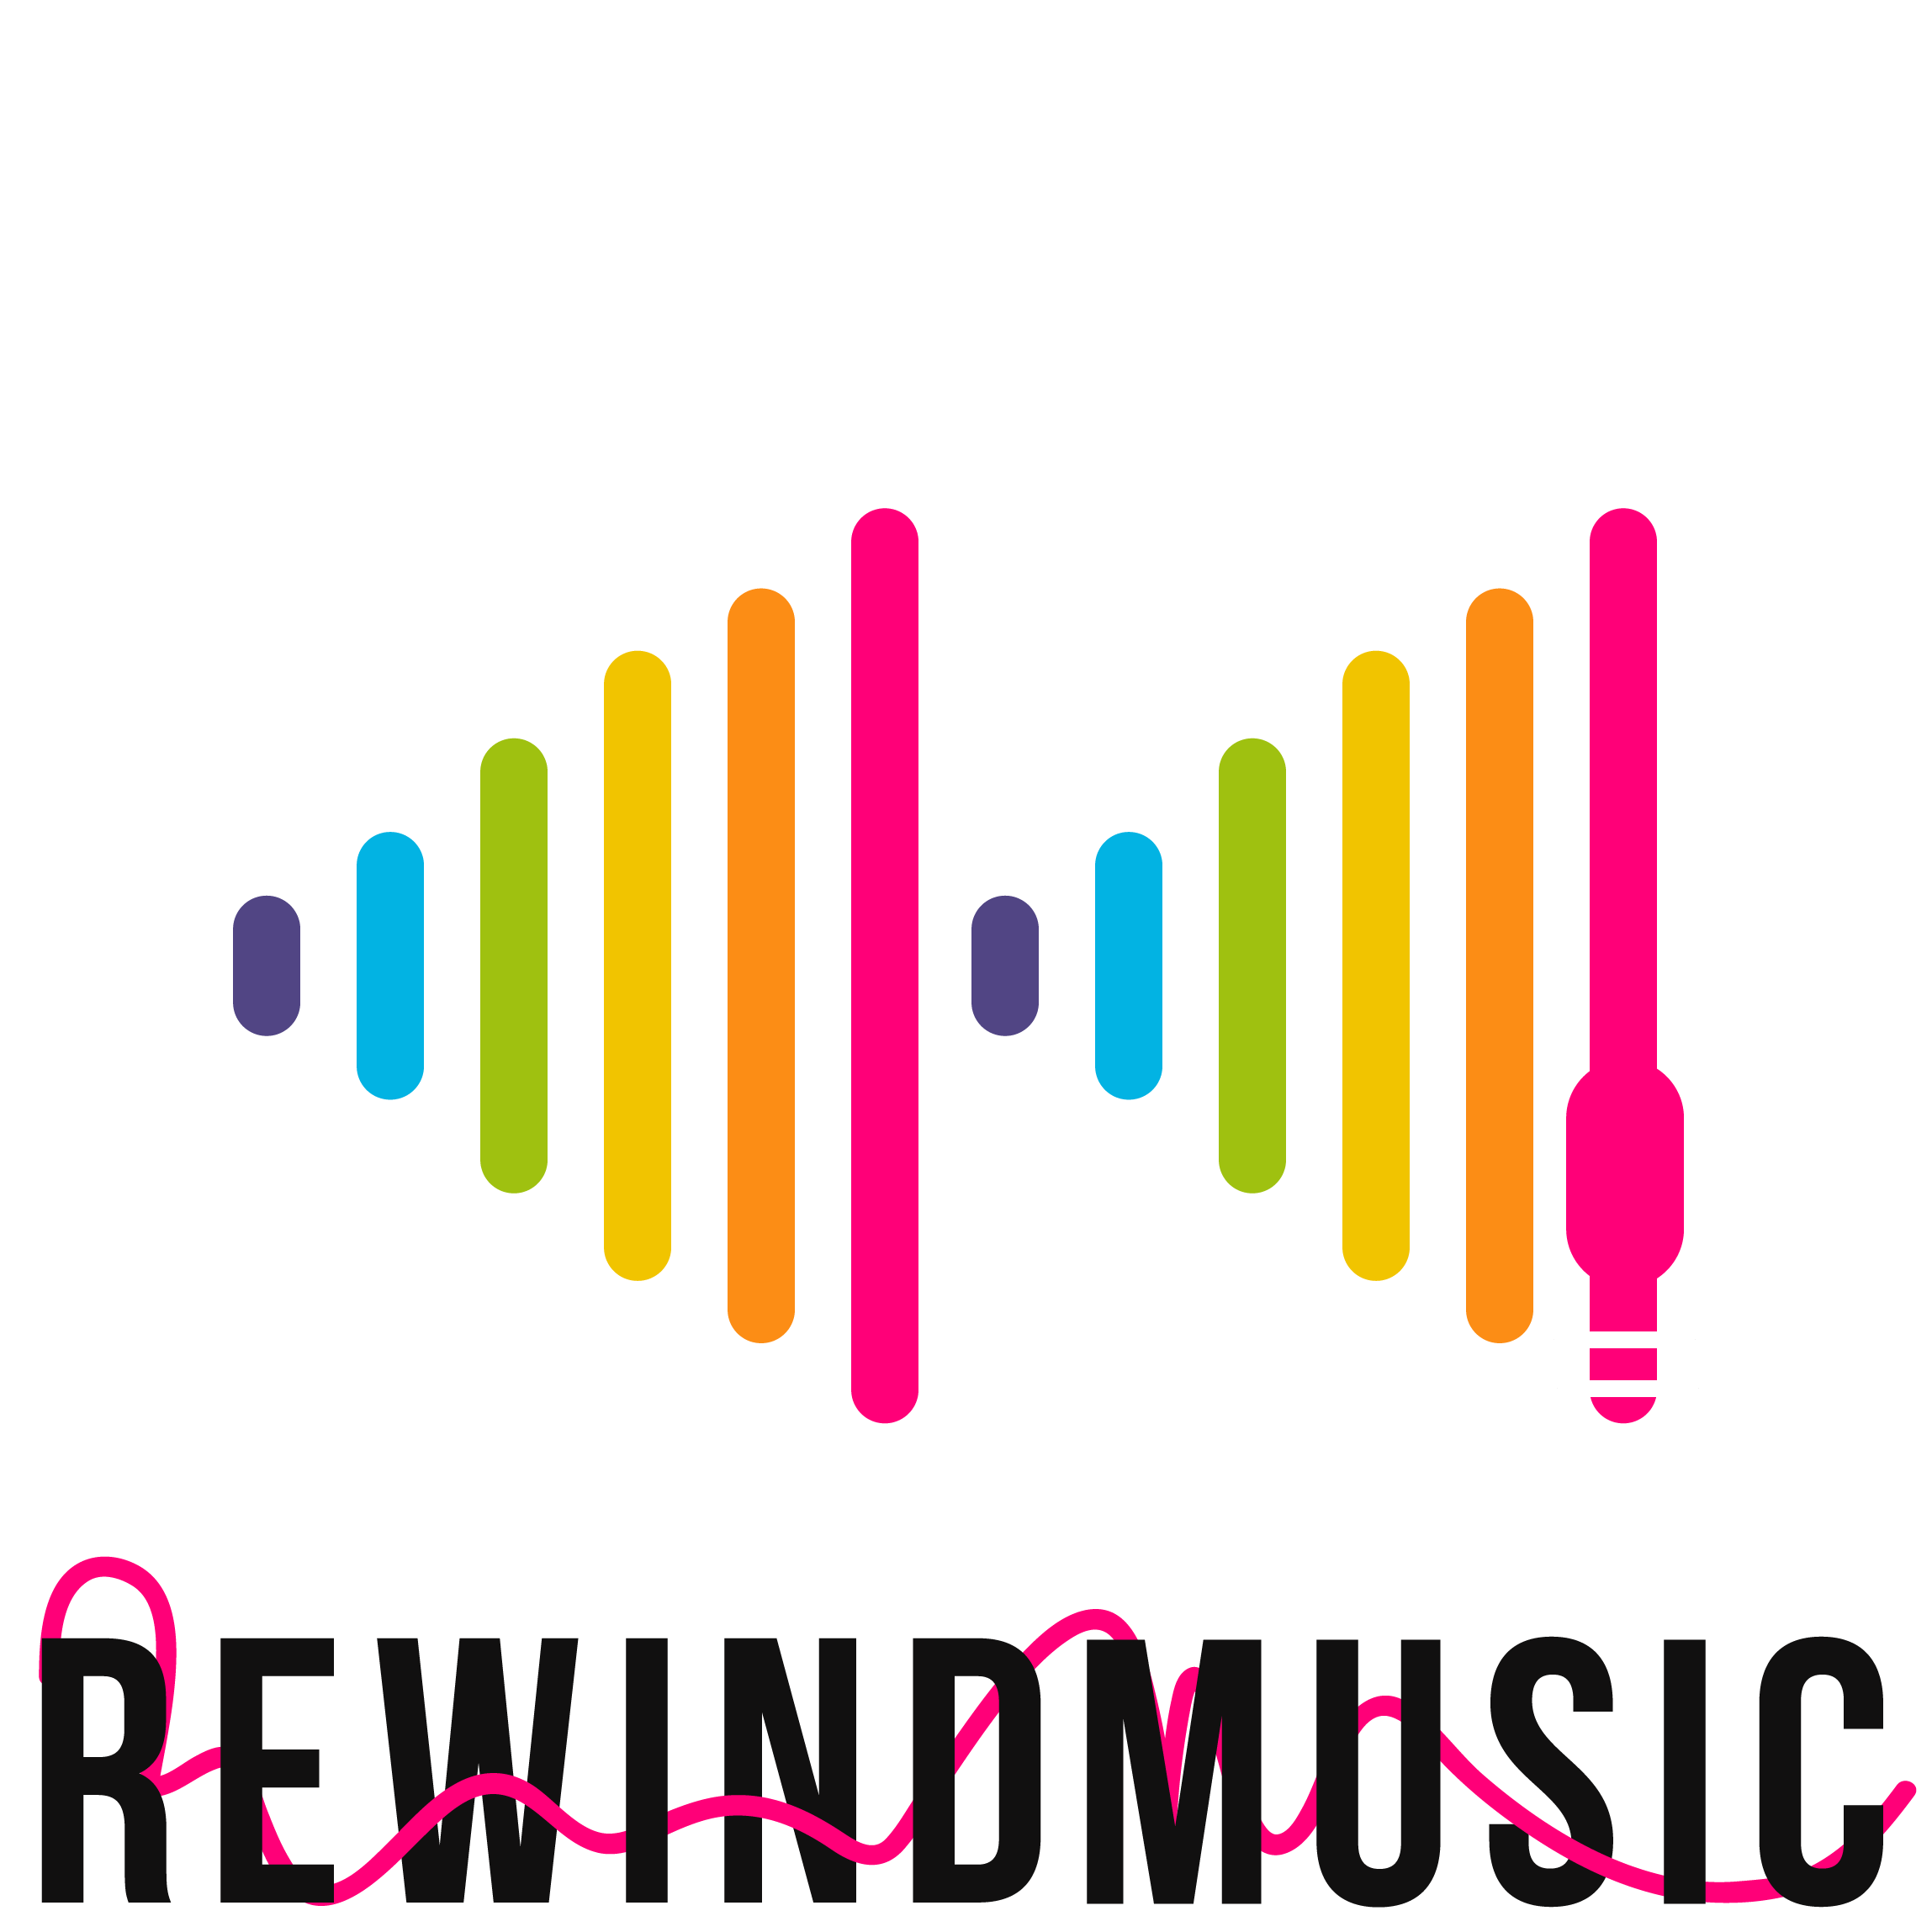 Rewind_Music_Square_White_Cable@4x-1-1